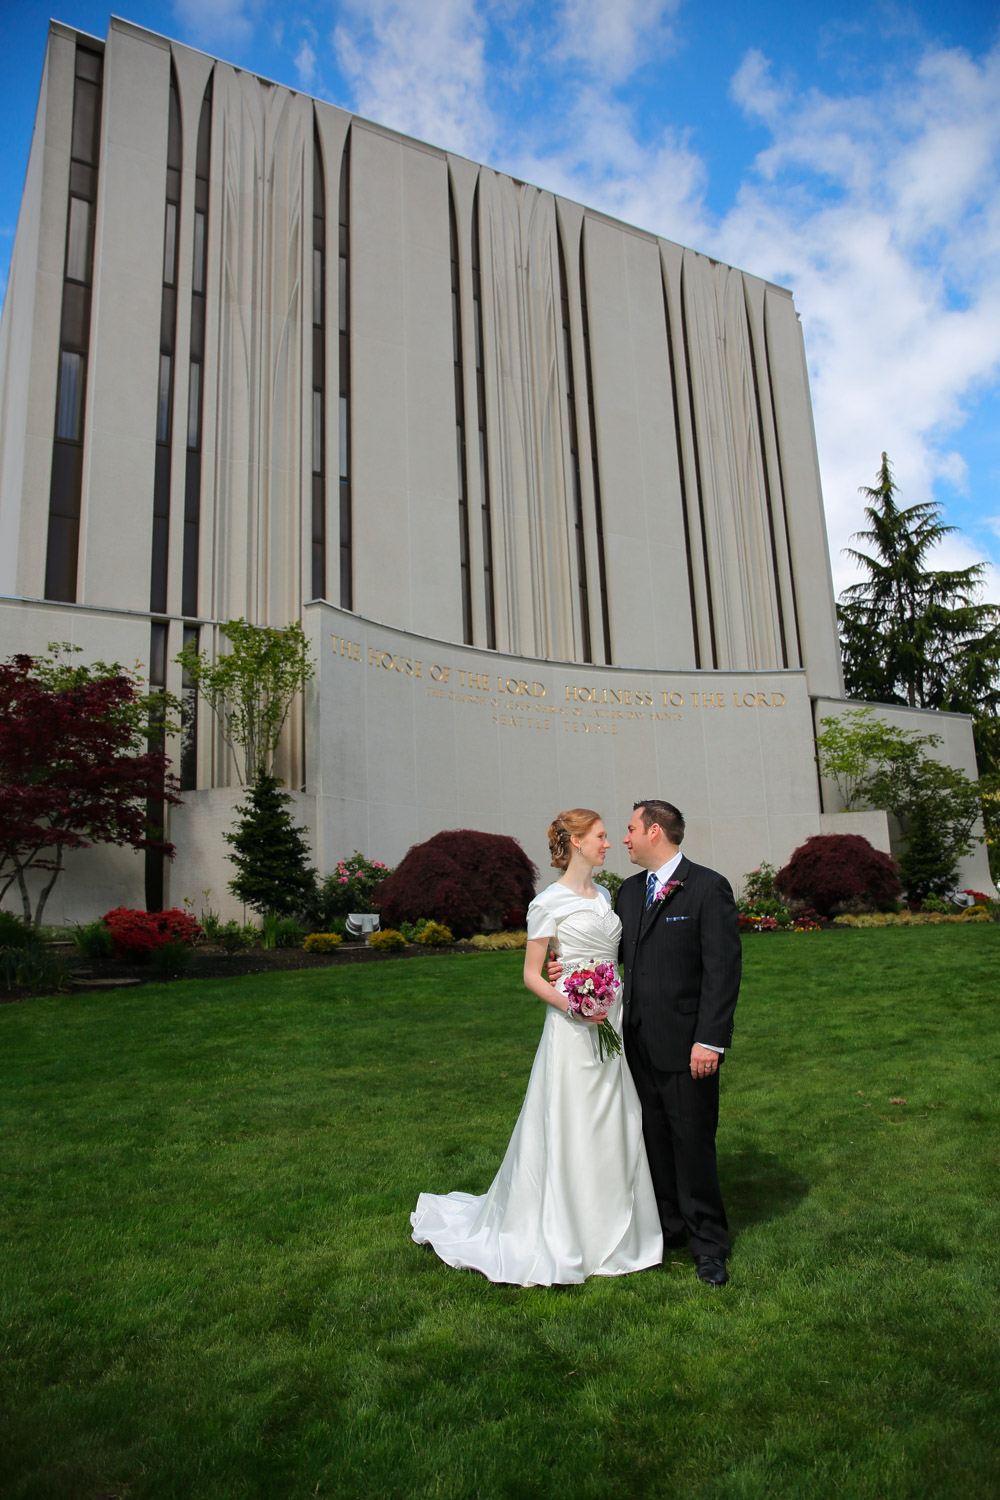 Wedding Photos LDS Temple Bellevue Washington08.jpg